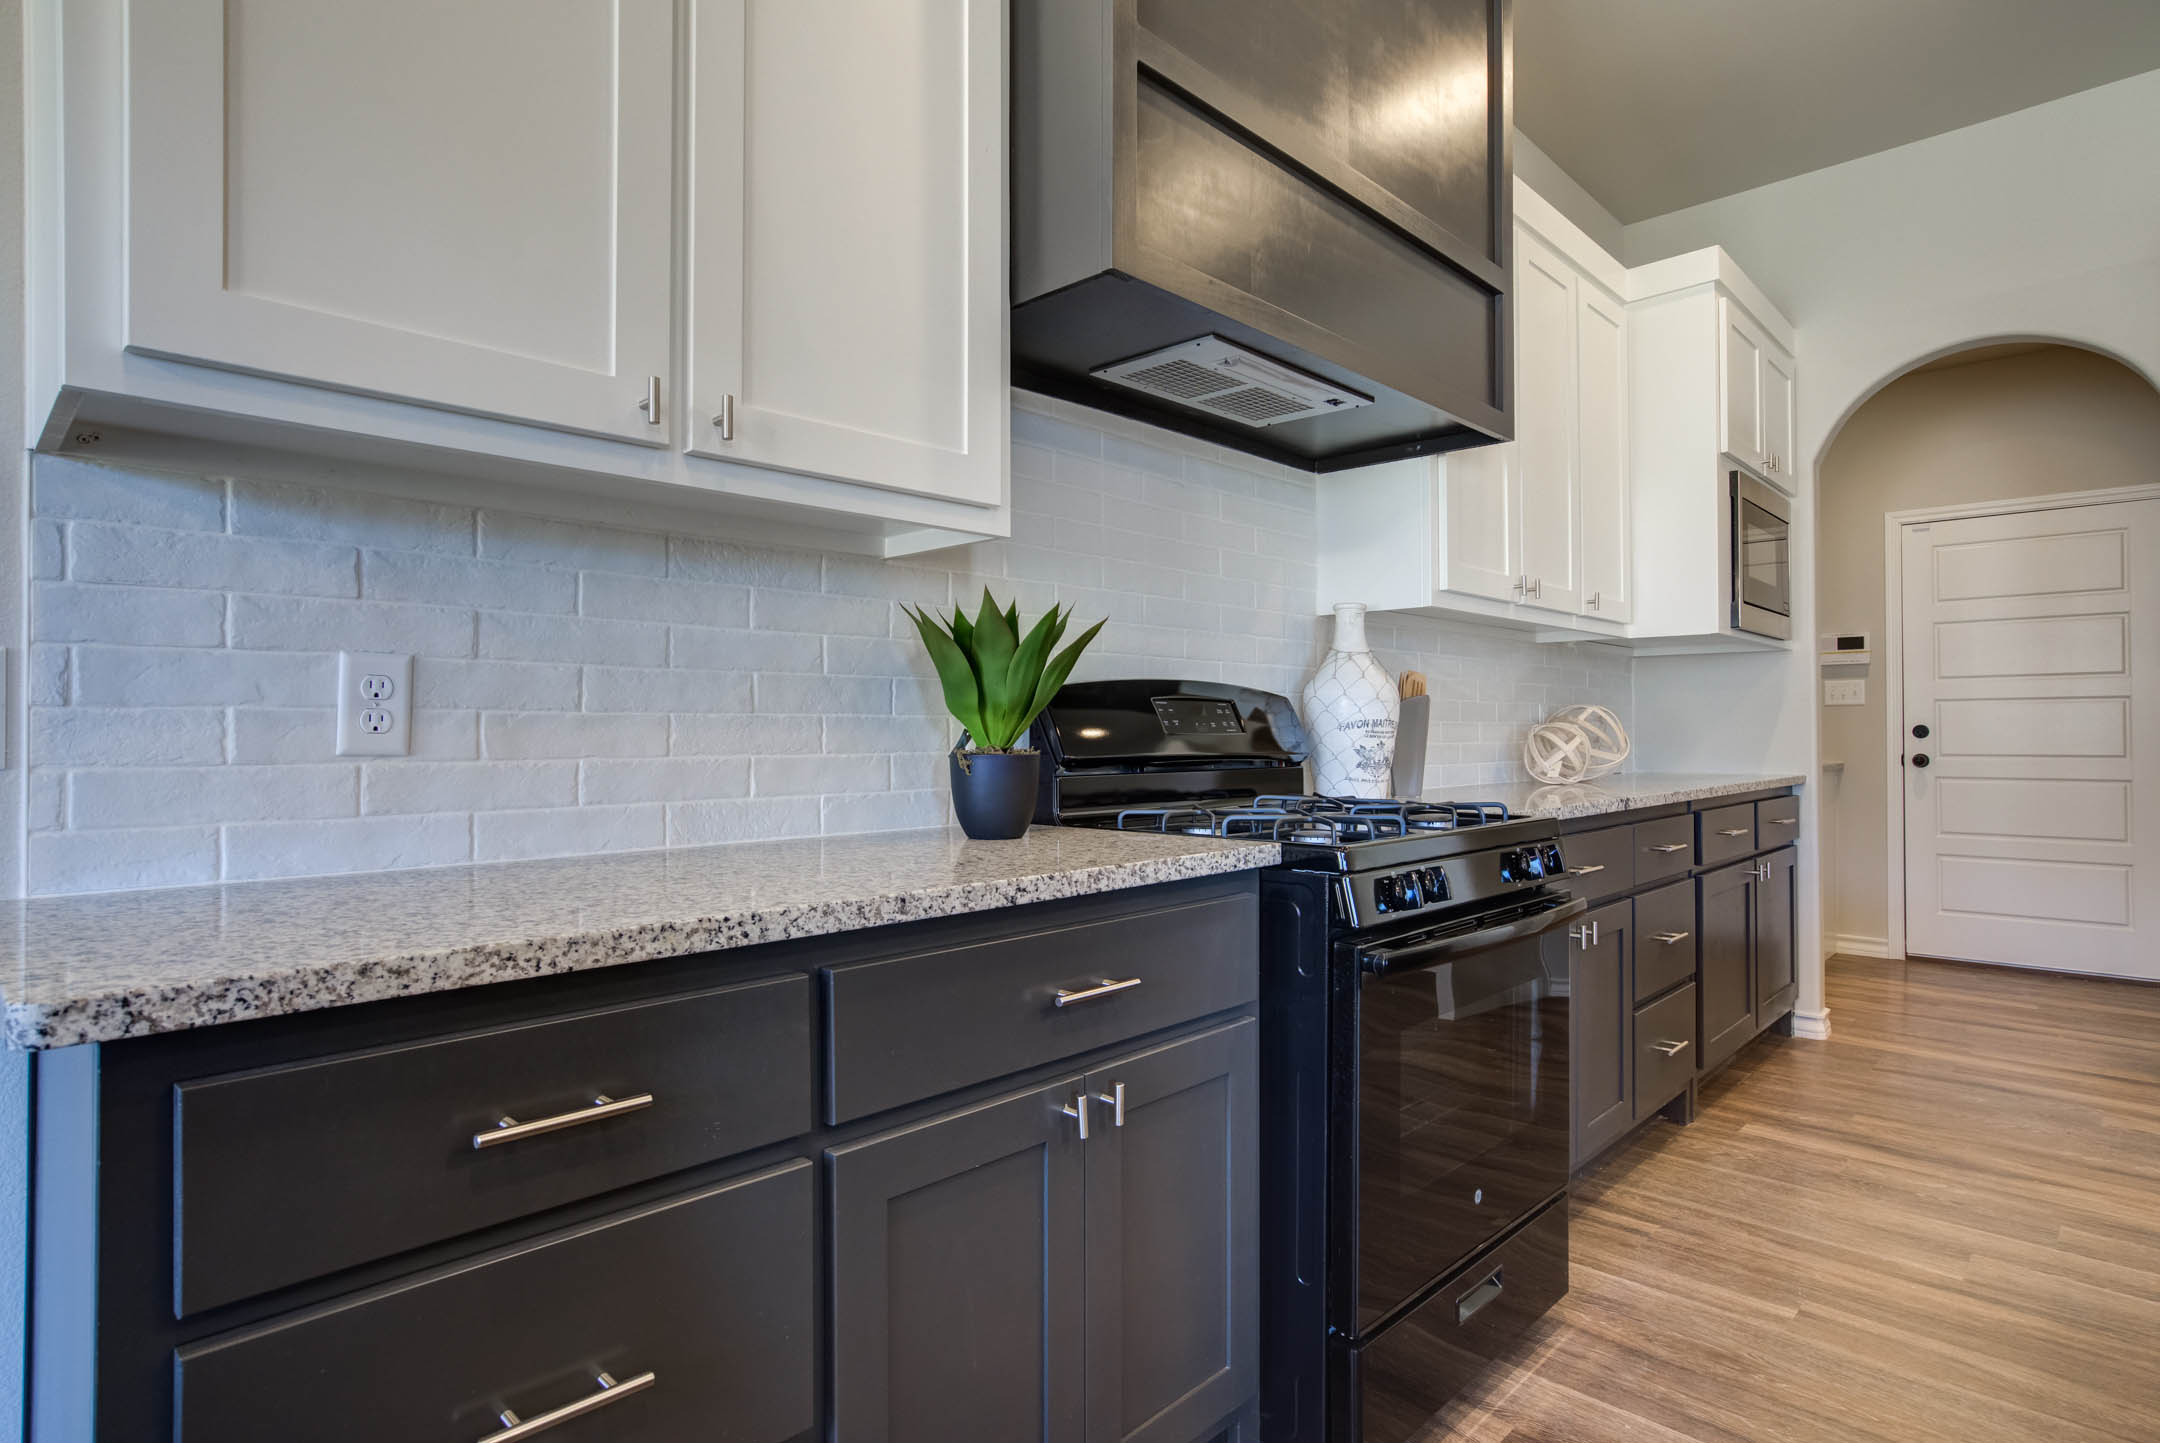 Kitchen with ample workspace in new home for sale in Lubbock, Texas.